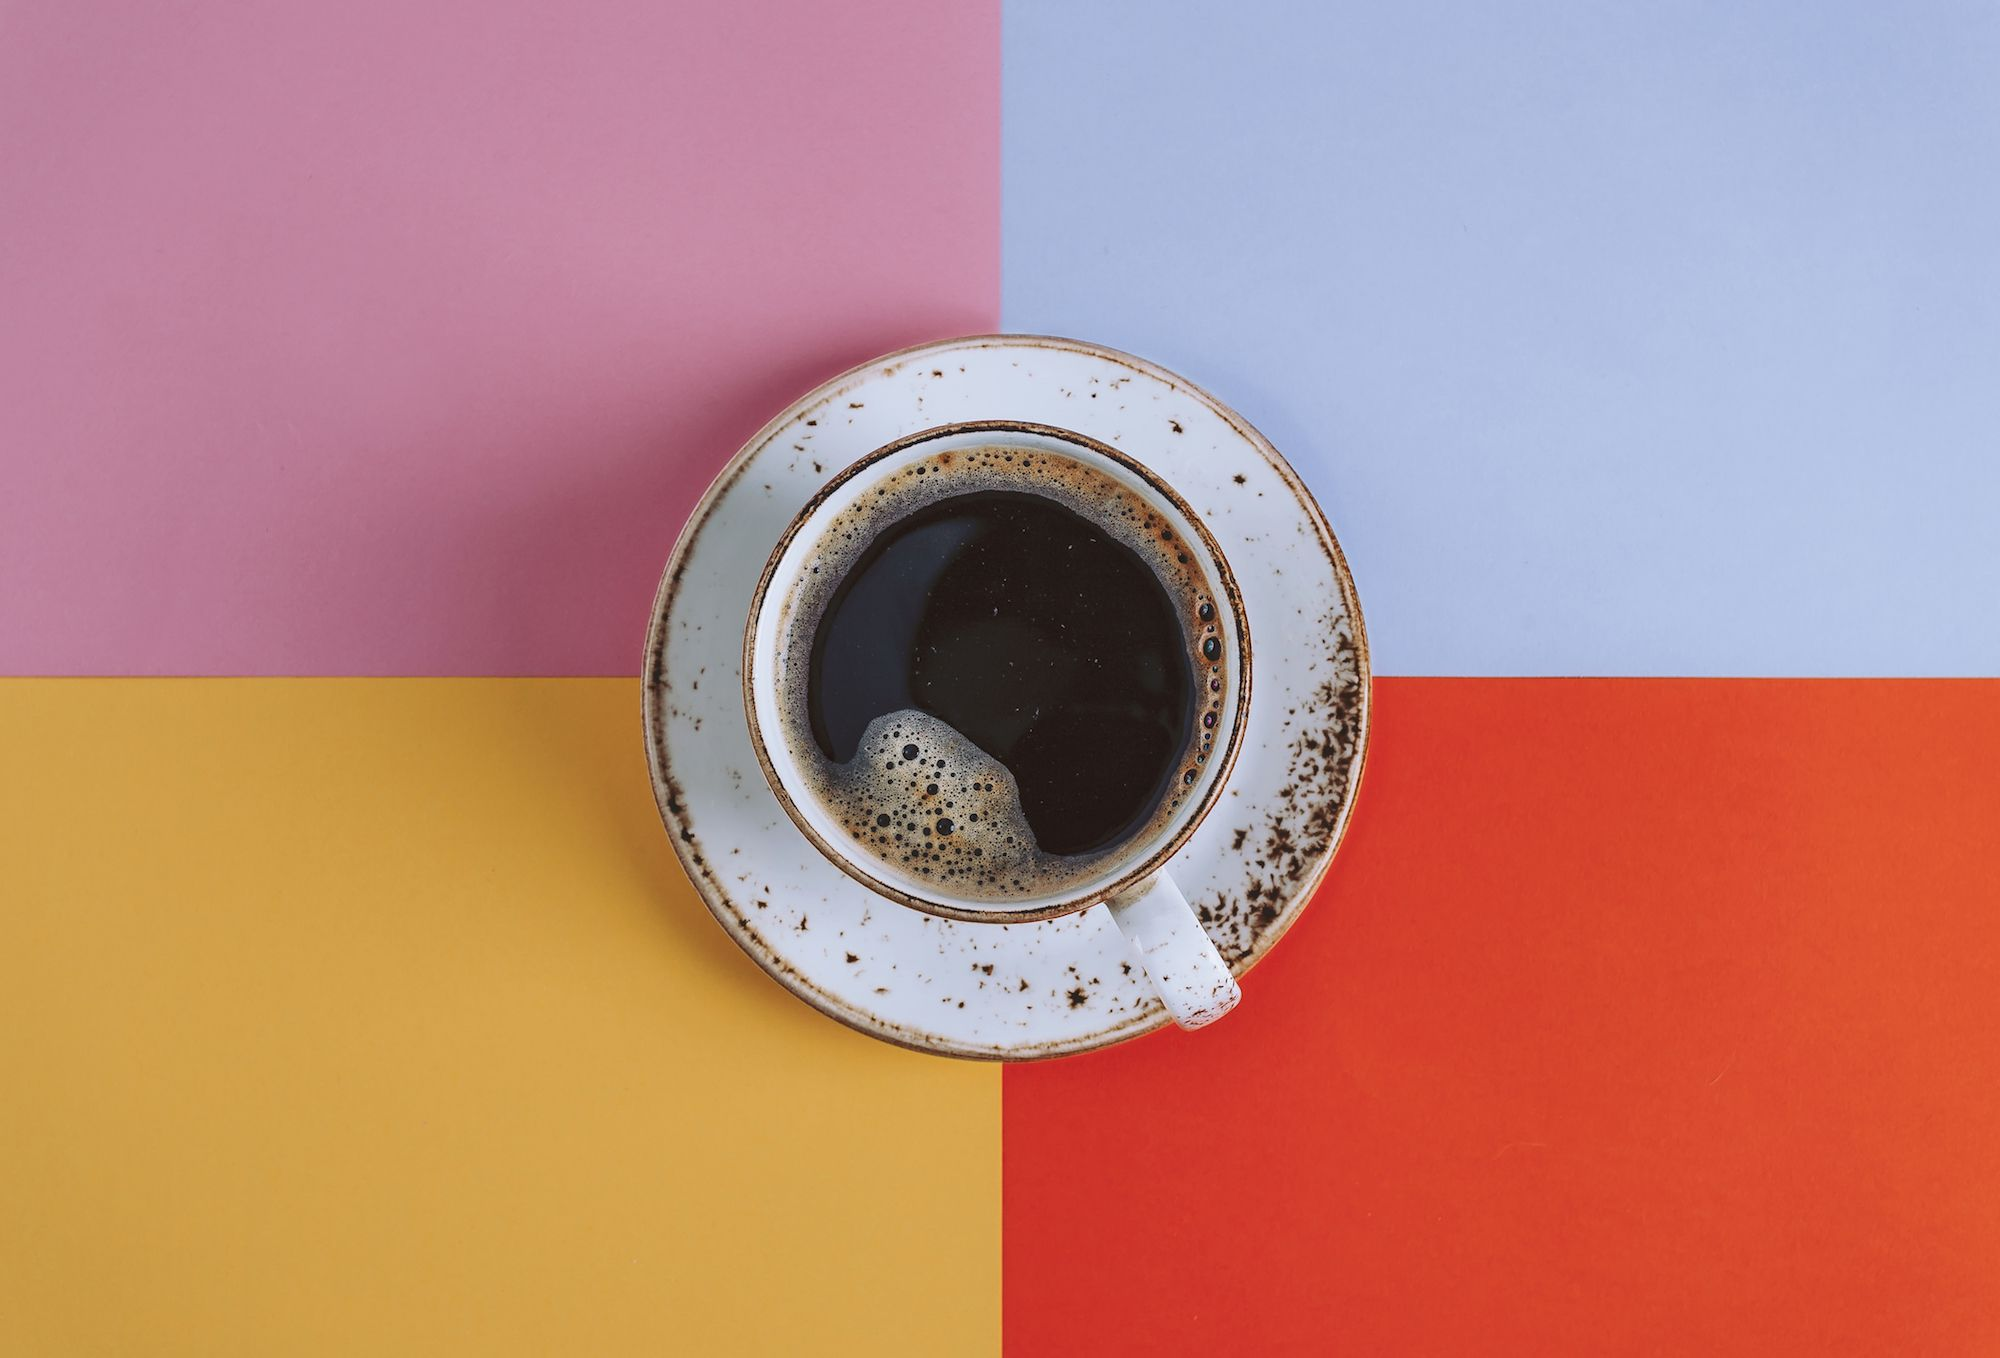 Cup of coffee on a saucer